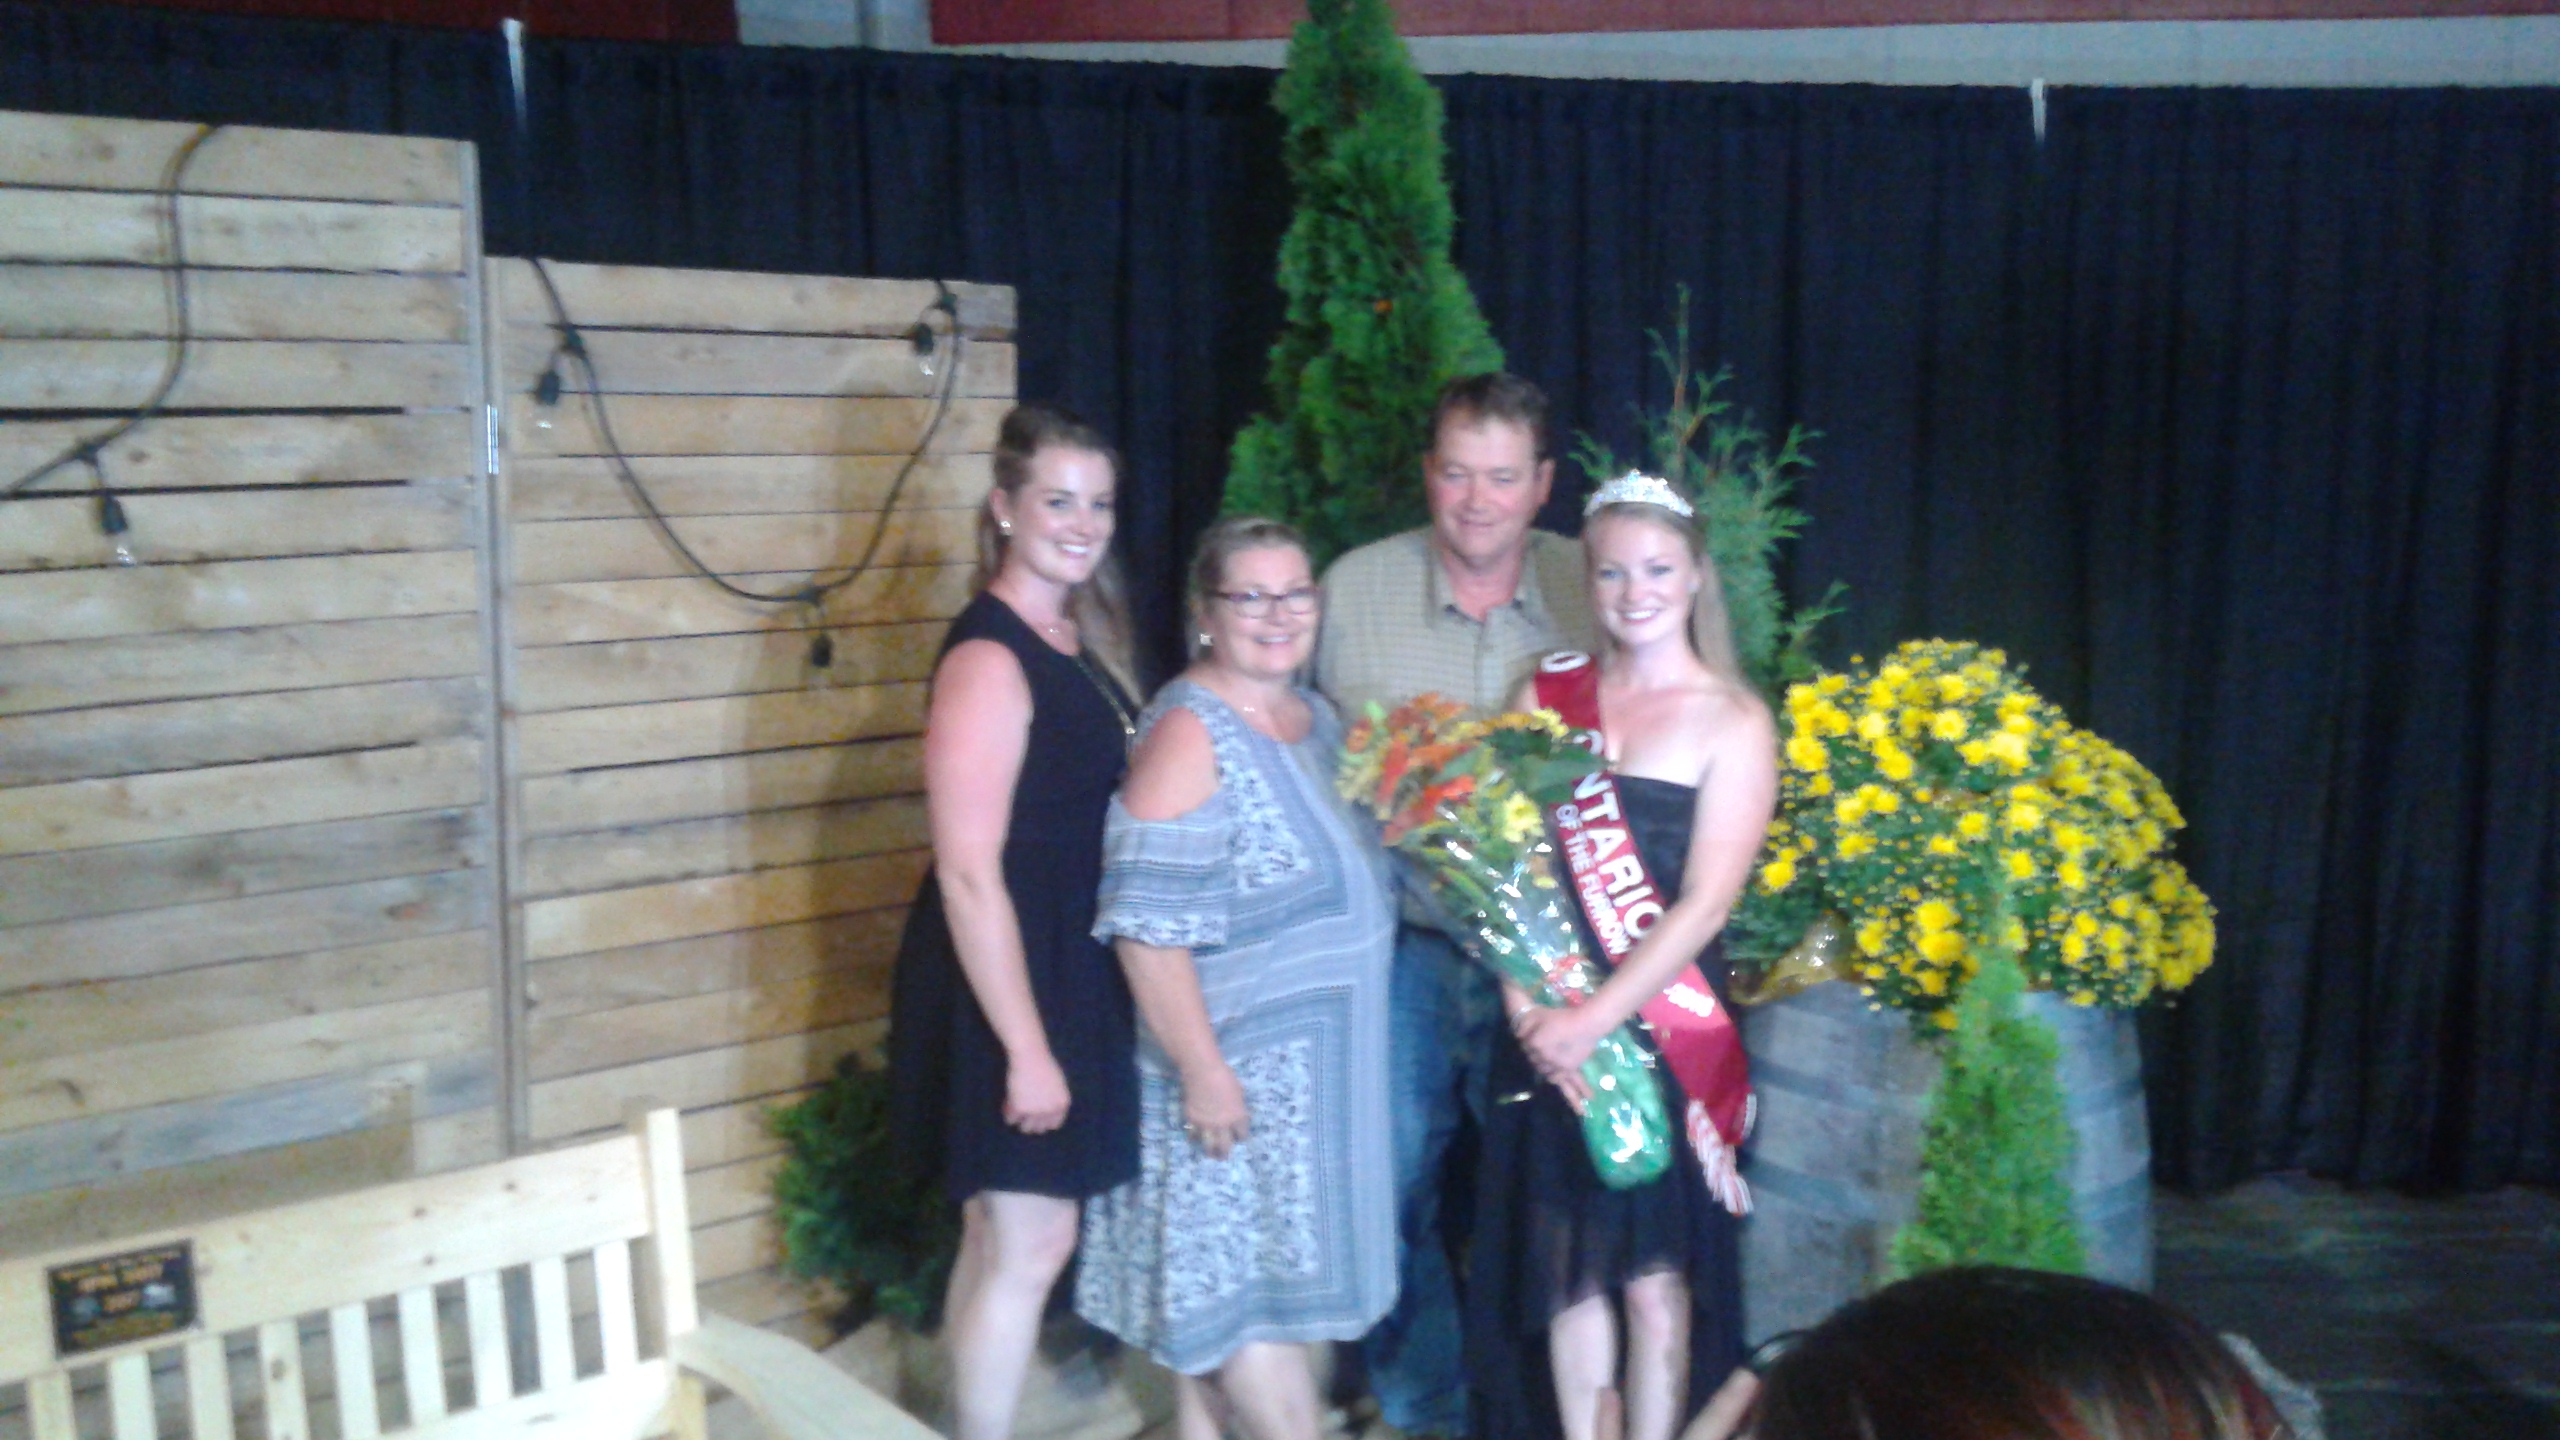 2017 Queen Of The Furrow Crowned In Brussels